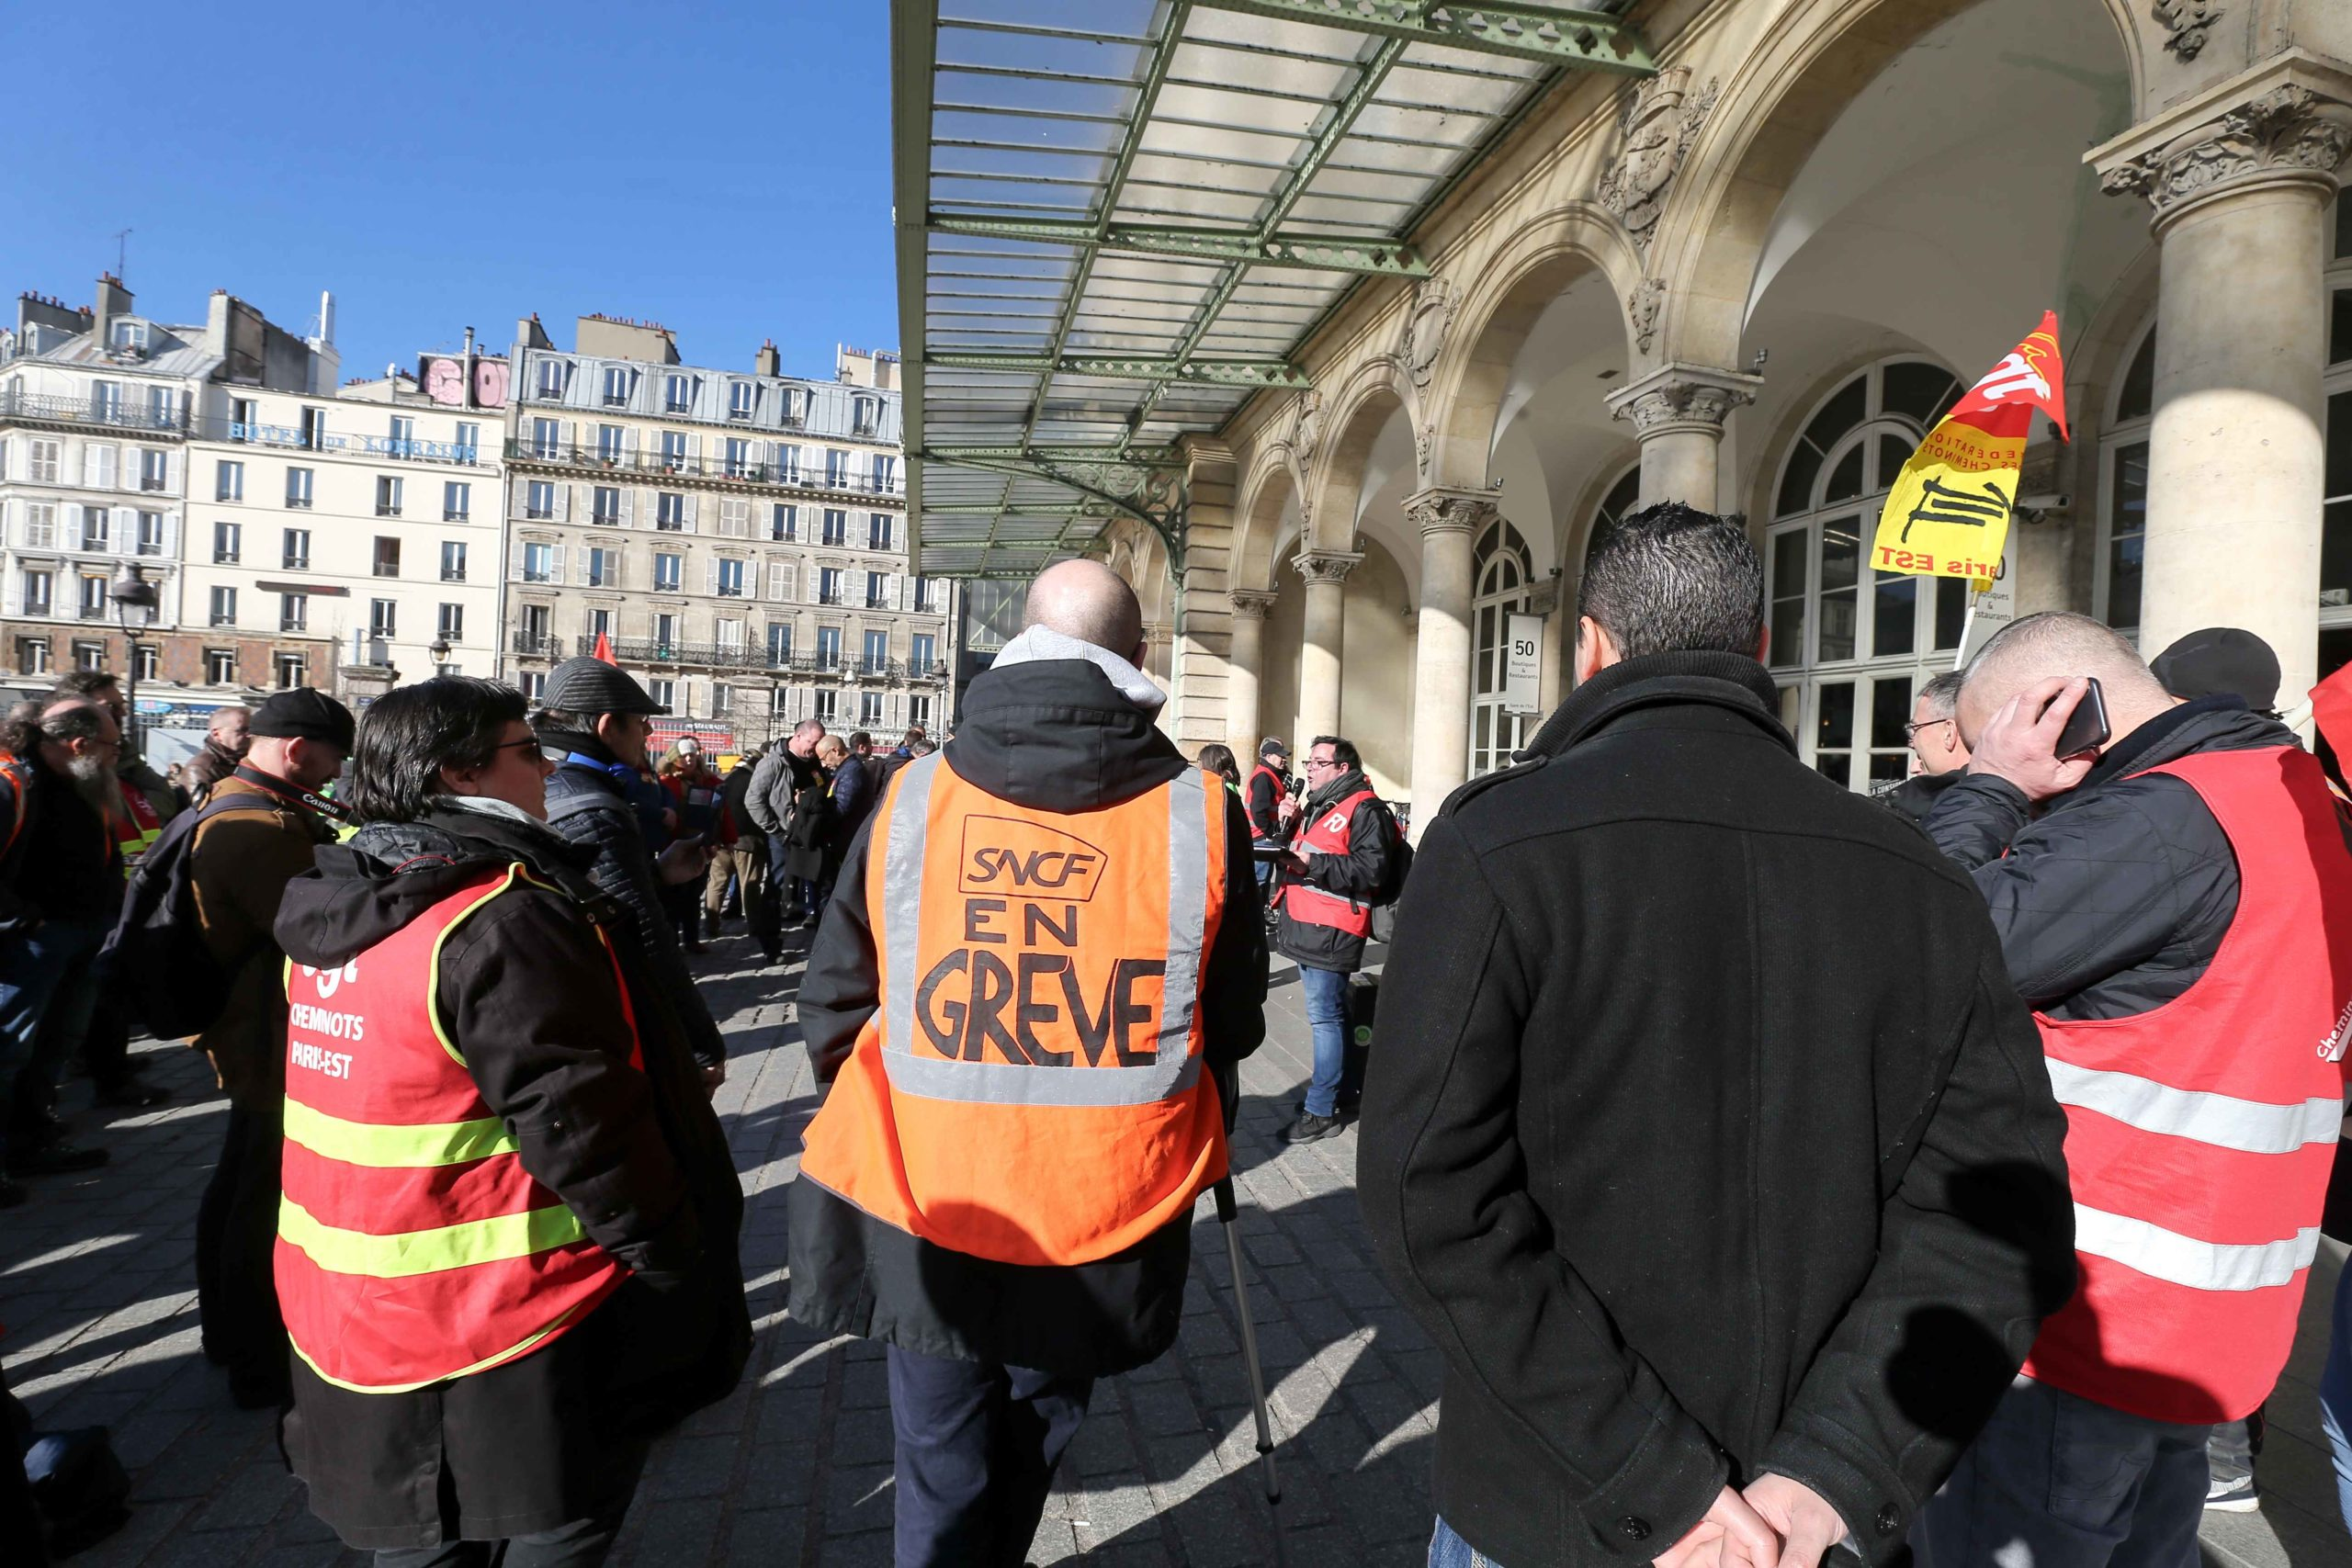 Railway workers gather in front the East railway station, in Paris, for a general assembly, on 6 February 6, 2020, during a ninth inter-professional day of strikes and demonstrations since early December 2019 against the French government's pensions overha